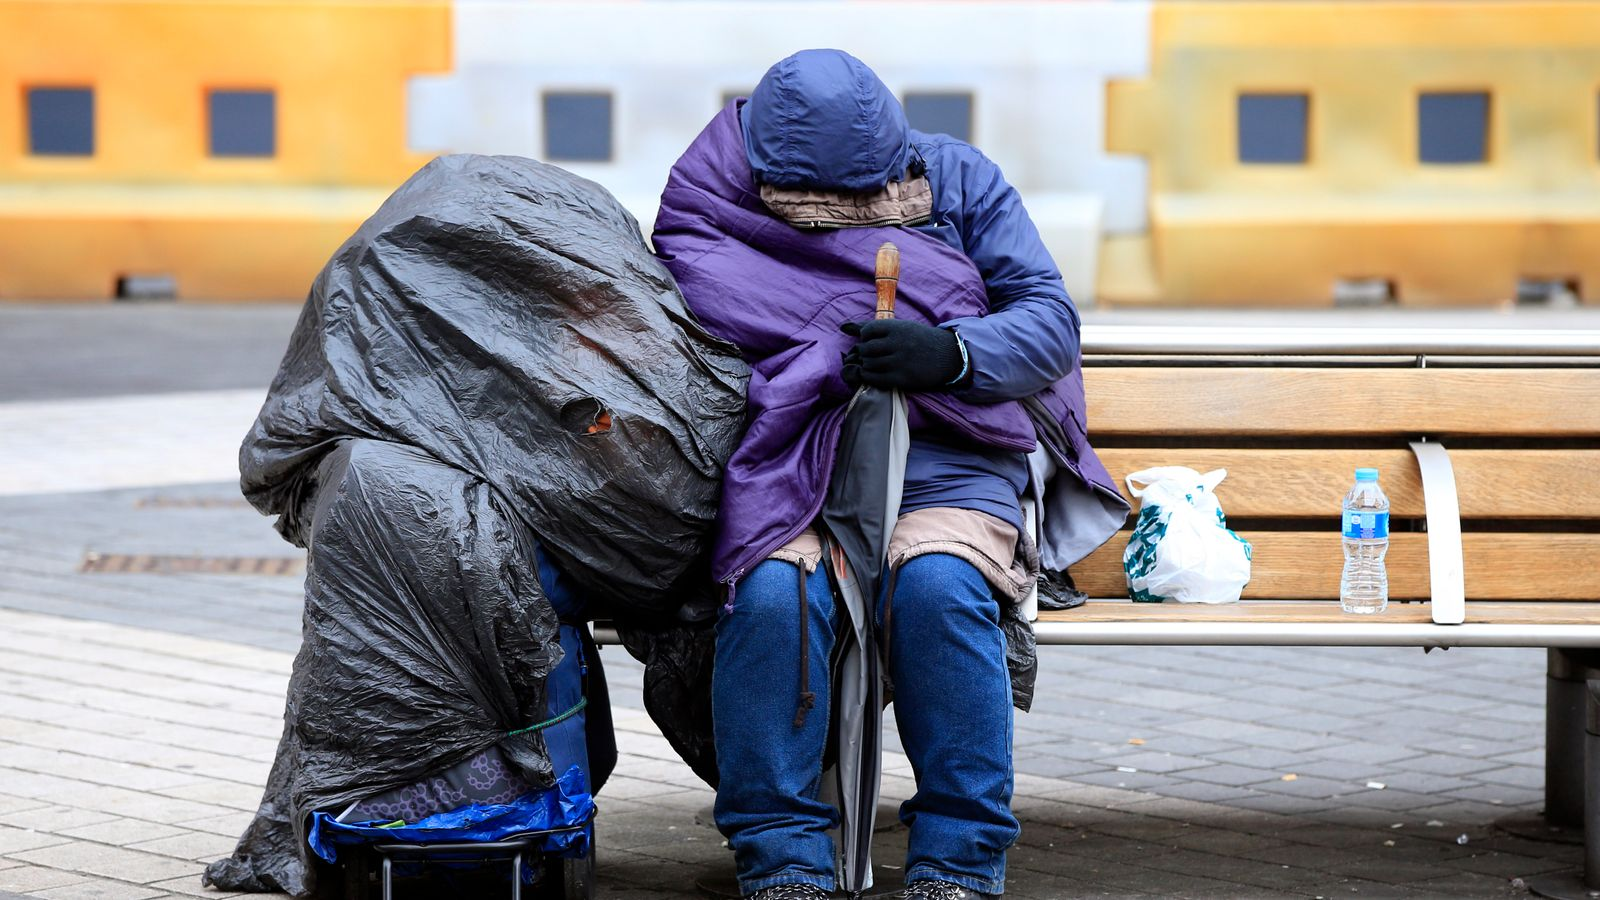 societys treatment of the homeless people The homeless people's suffering belongs to amusement of our political order under a game over the right of marginalised group being transformed into citizens for merely punishment and humiliation.